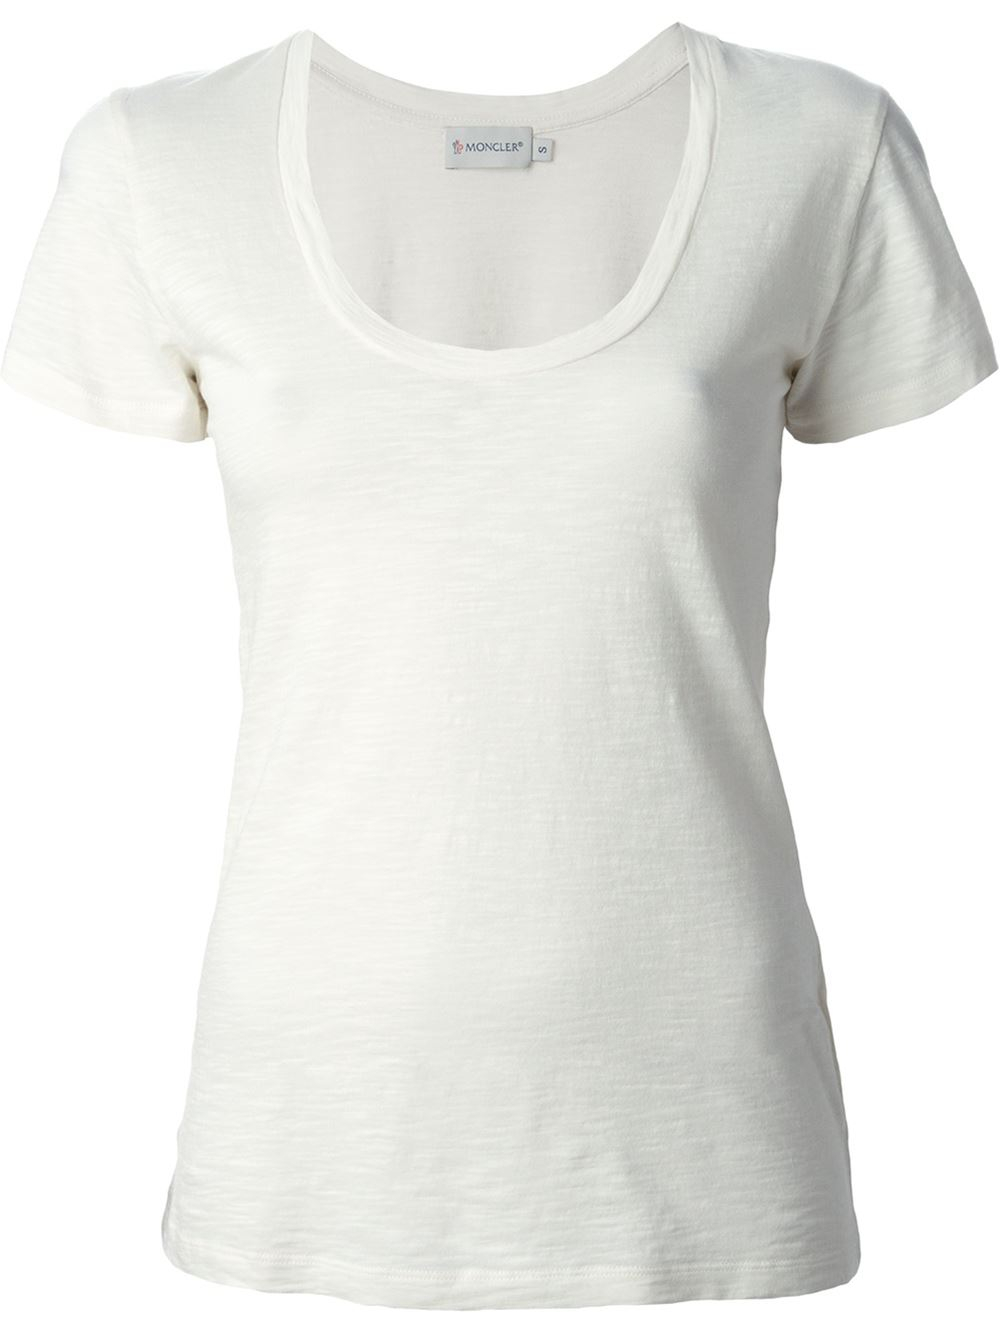 Moncler scoop neck t shirt in white lyst for Off white moncler t shirt